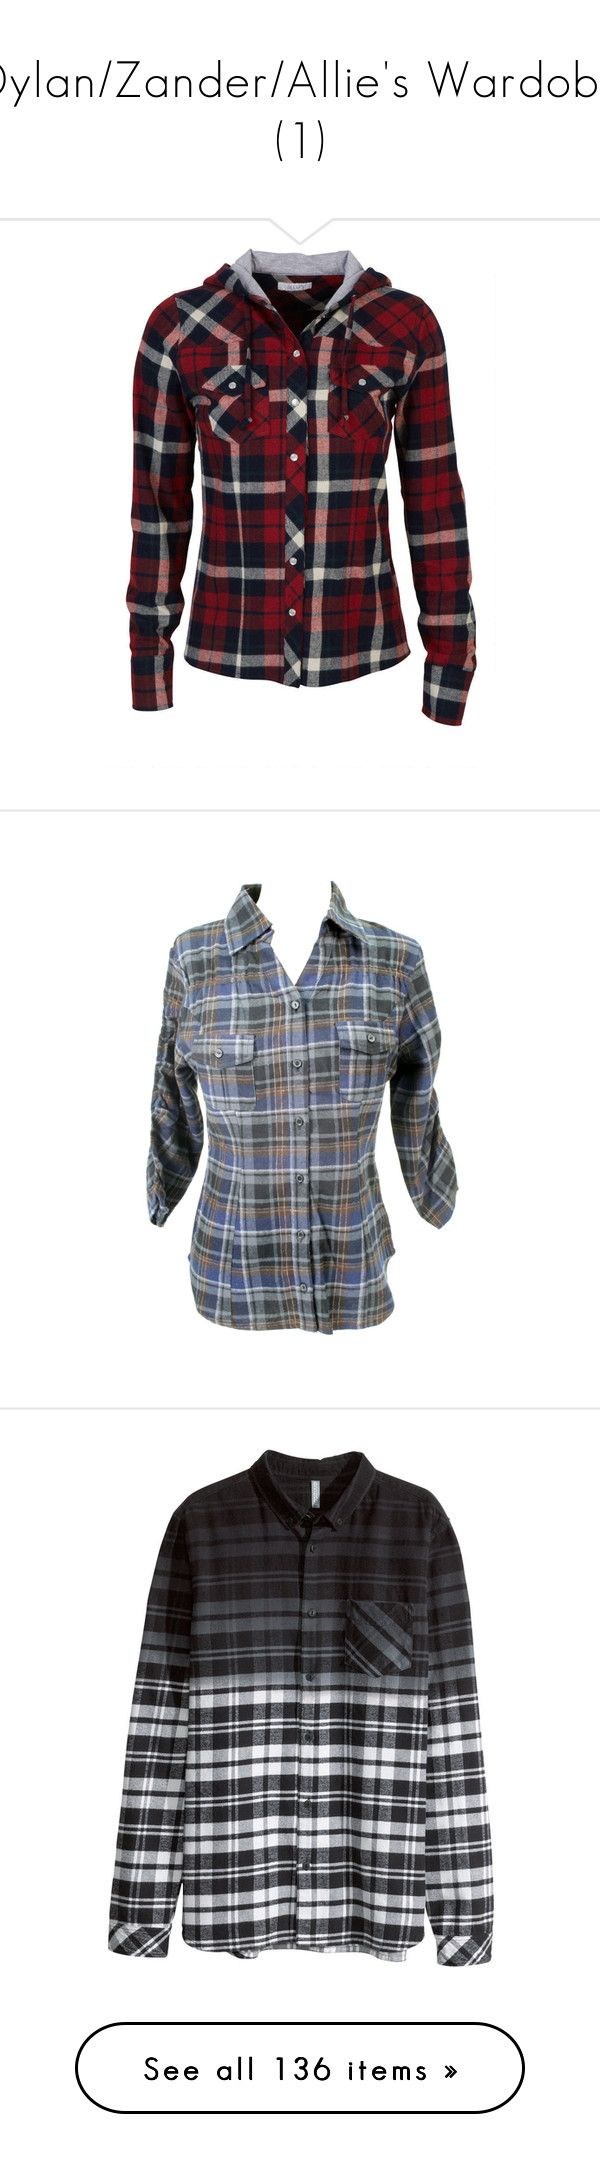 """""""Dylan/Zander/Allie's Wardobe (1)"""" by i-meant-it-ironicly ❤ liked on Polyvore featuring tops, shirts, jackets, flannels, hoodies, plaid button down shirt, red plaid shirt, hooded flannel shirt, plaid flannel shirt and red shirt"""